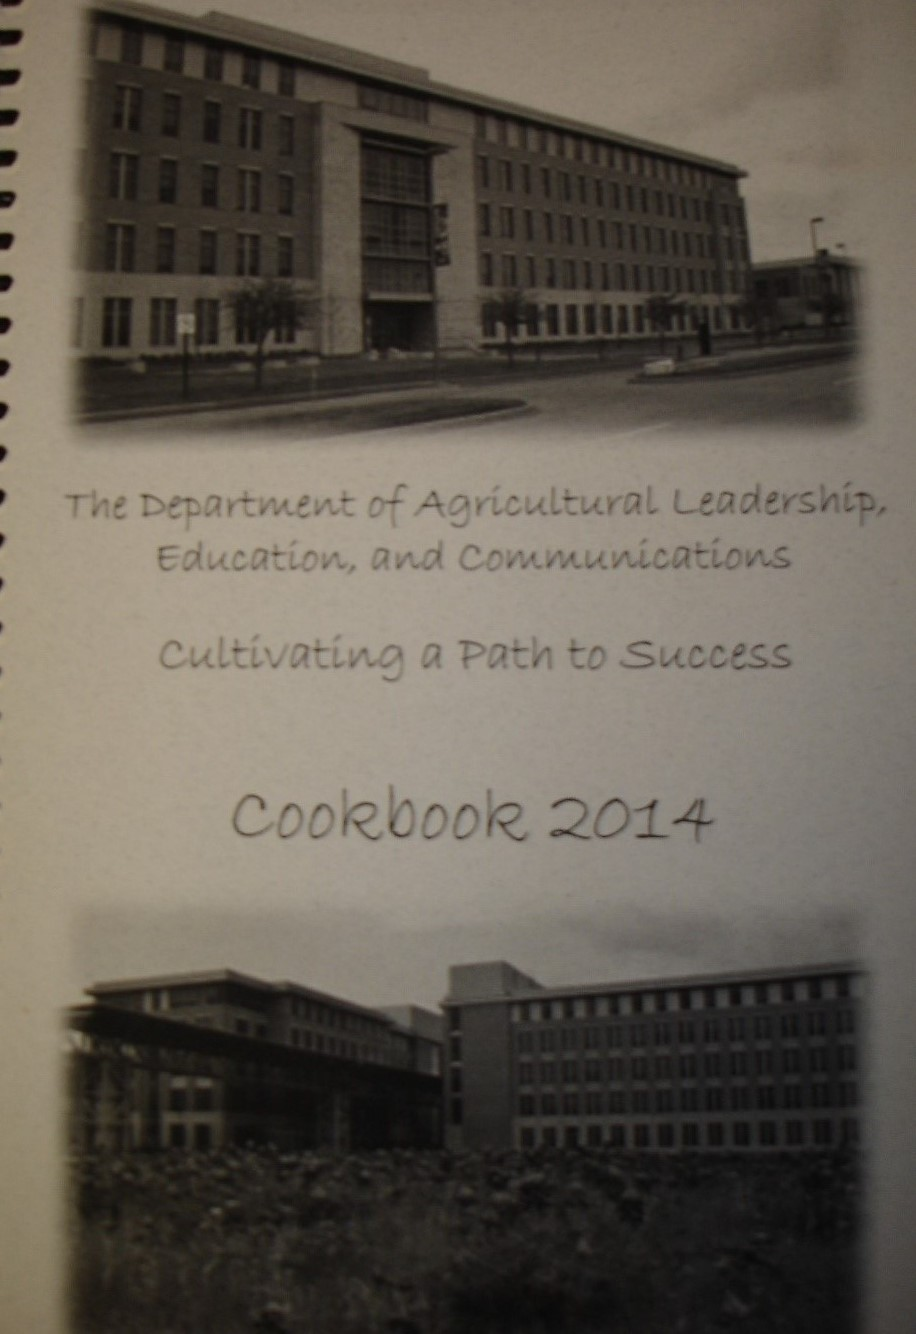 ALEC Cook Book 2014 - Cultivating a Path to Success